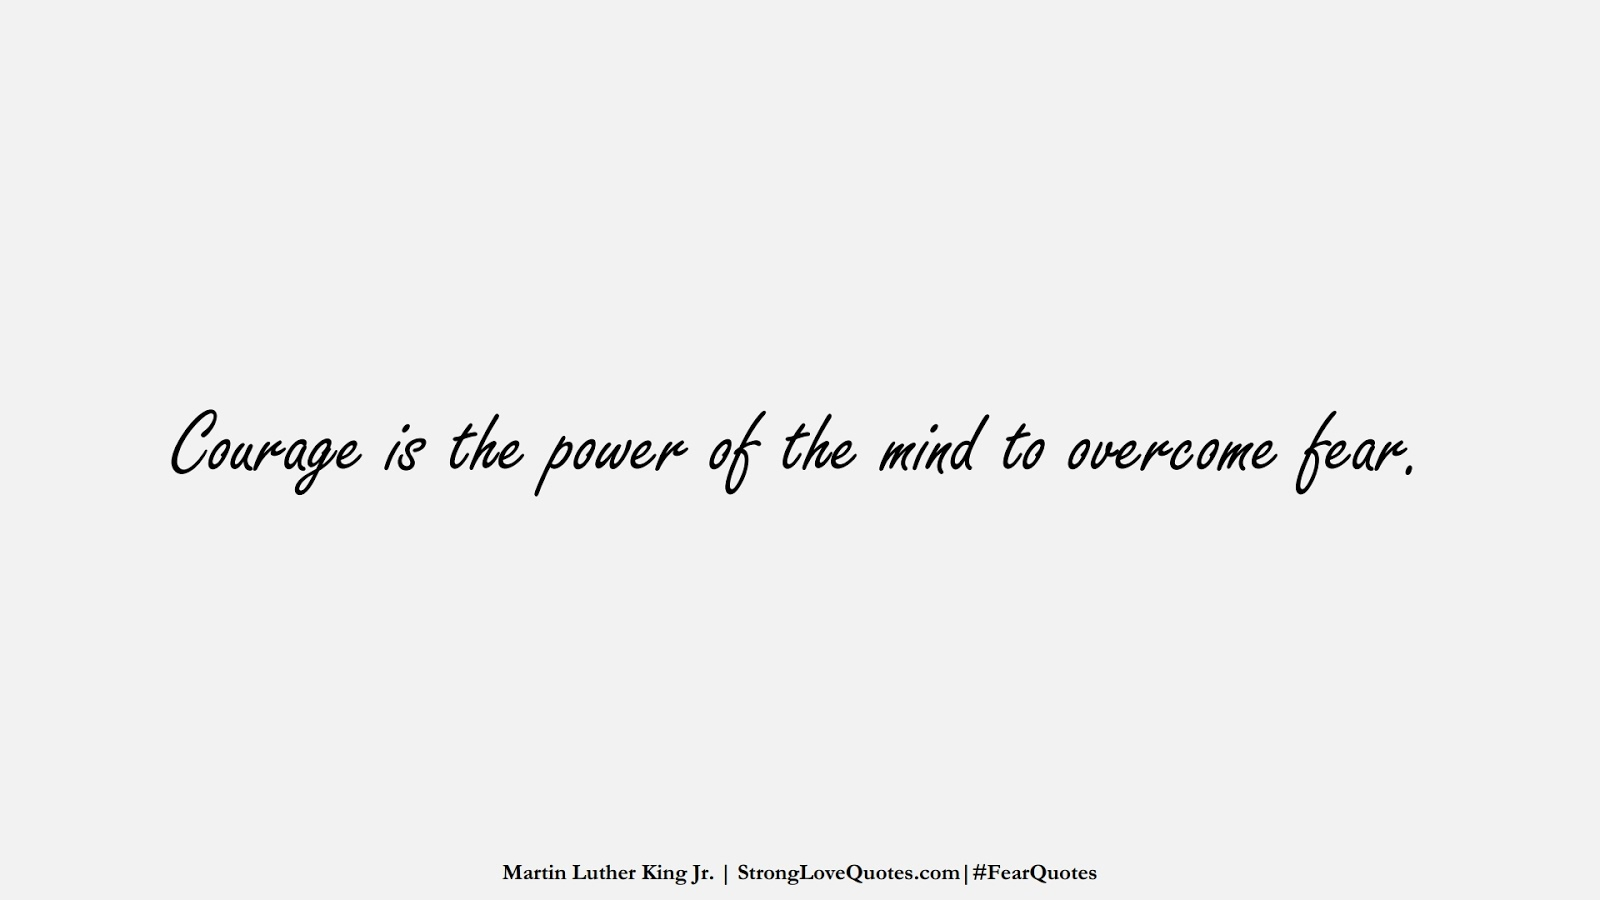 Courage is the power of the mind to overcome fear. (Martin Luther King Jr.);  #FearQuotes